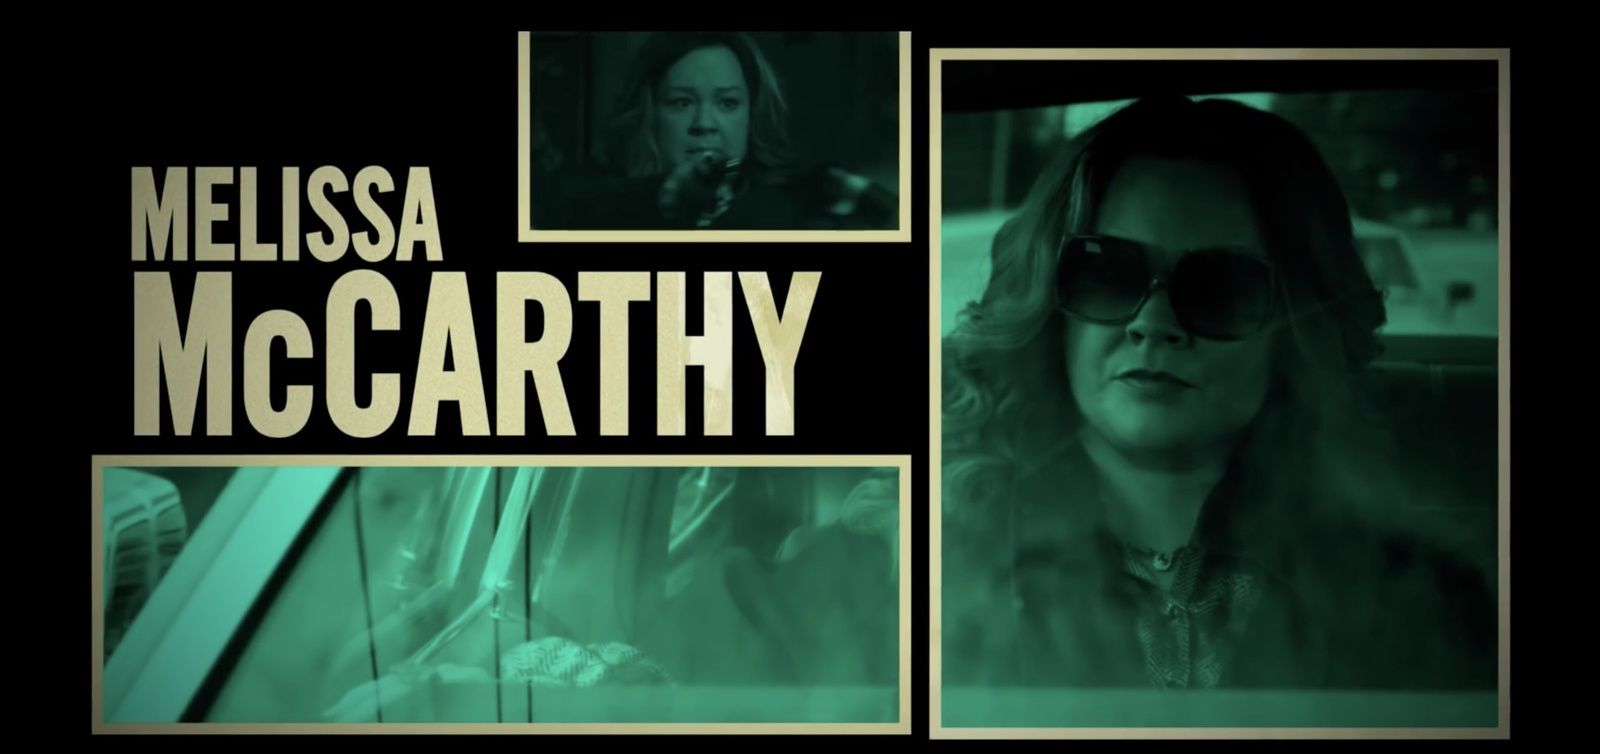 Bande-annonce du film The Kitchen, avec Melissa McCarthy, Elisabeth Moss, Tiffany Haddish.